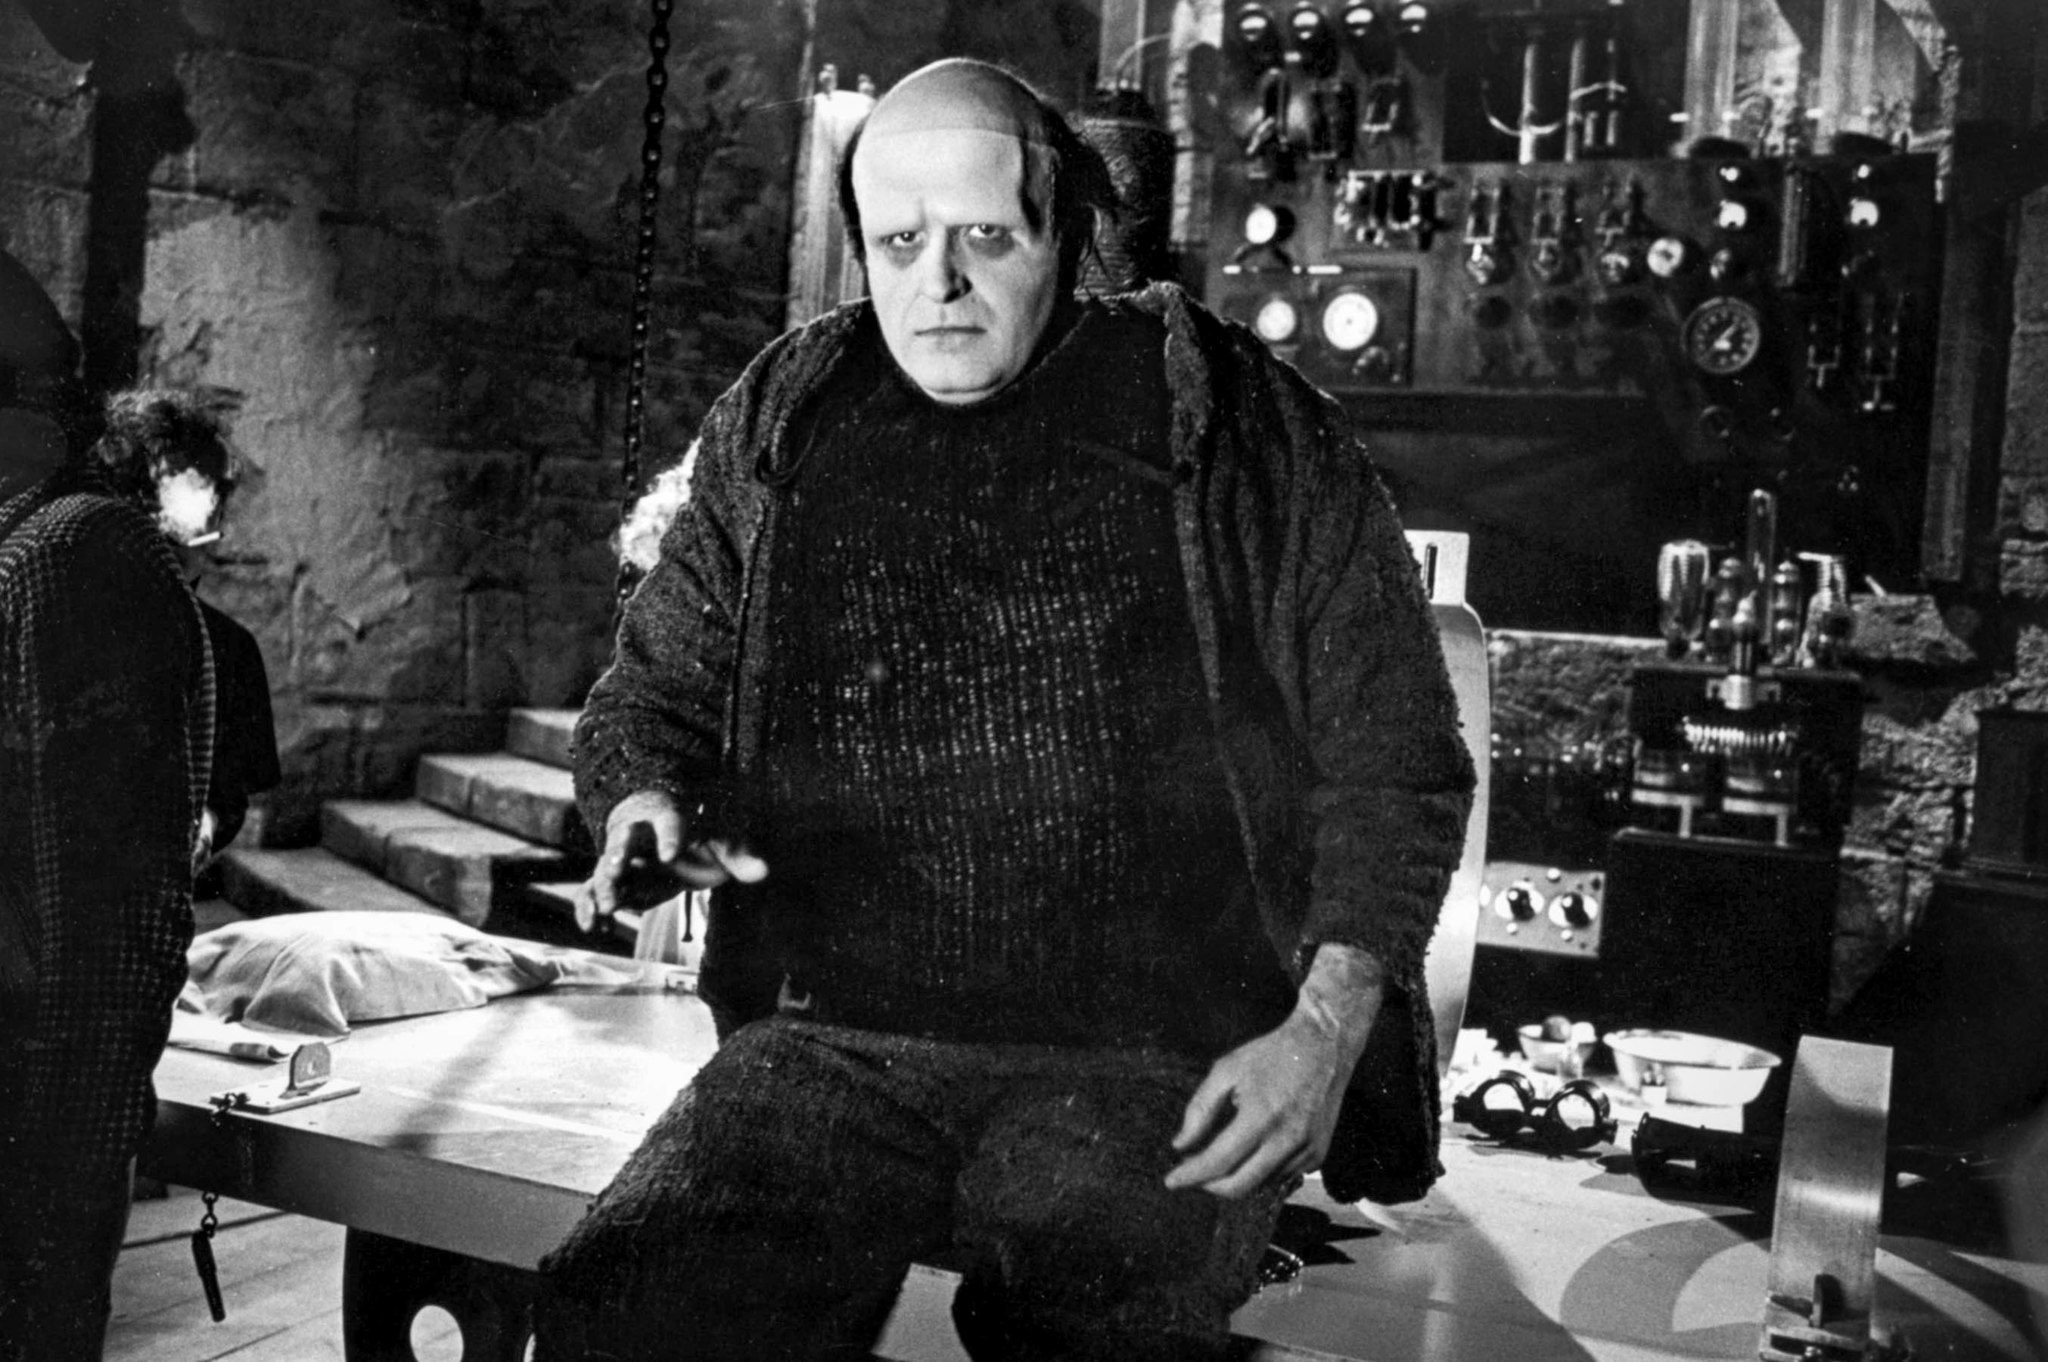 March 27, 1974: Peter Boyle as the monster on the set of